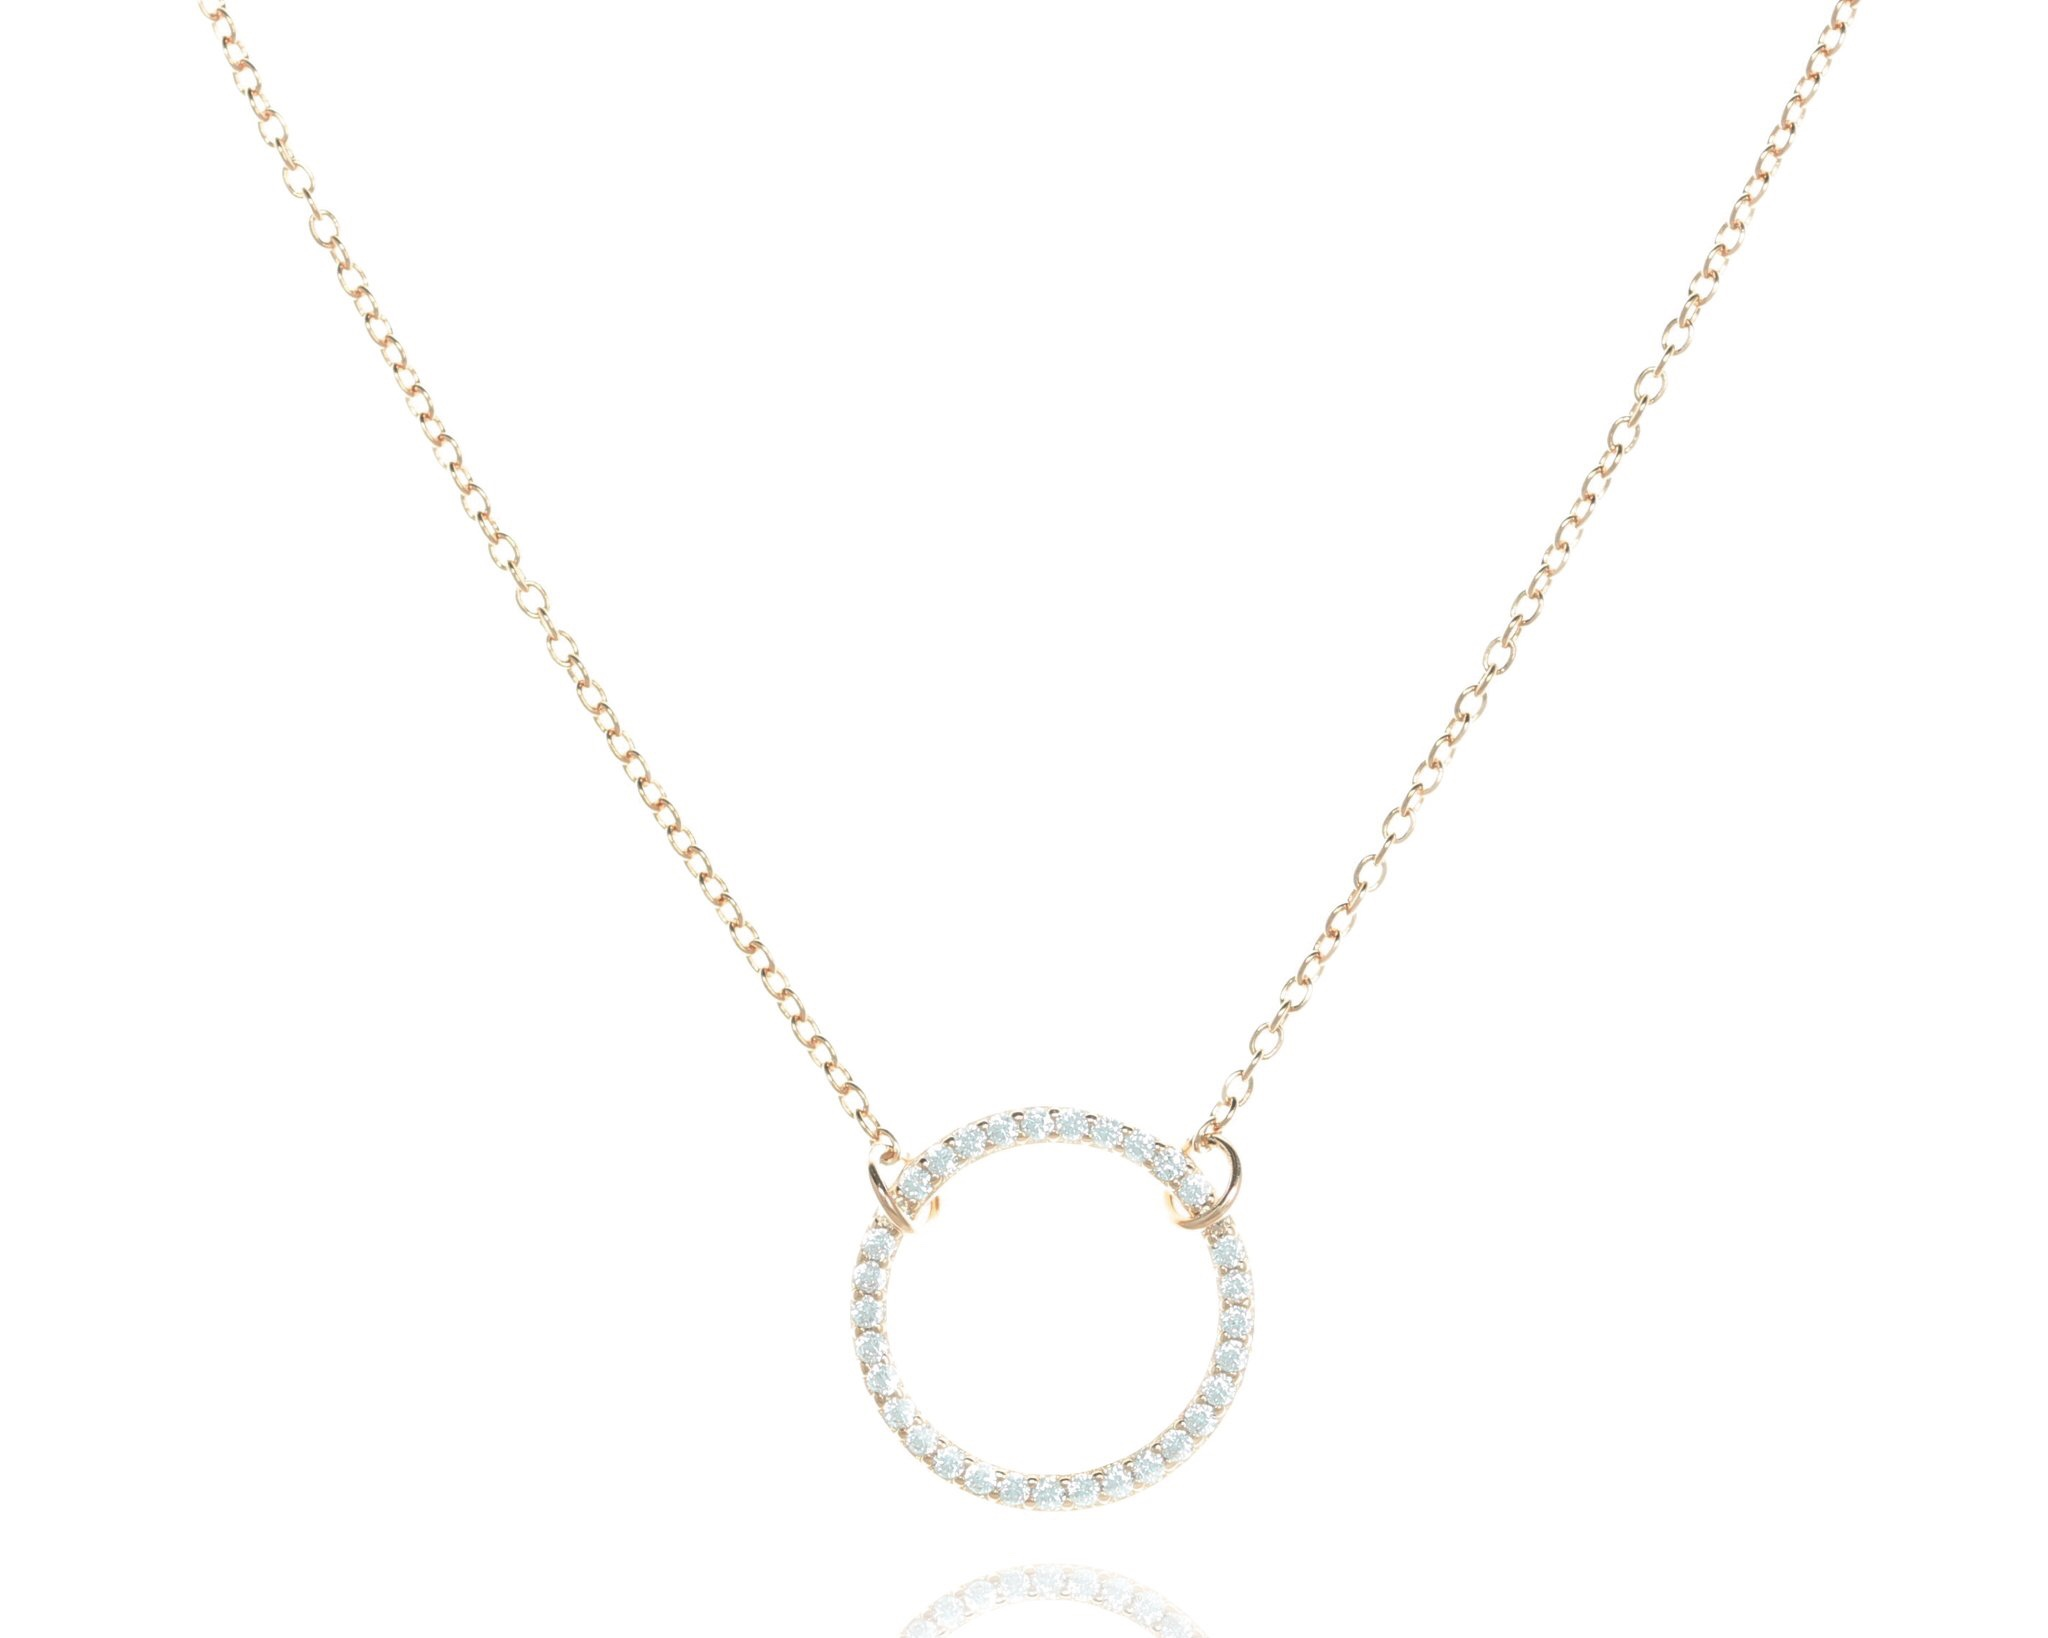 Necklace CZ Open Circle - Rose Gold Plate on Sterling Silver NJ-39/RG